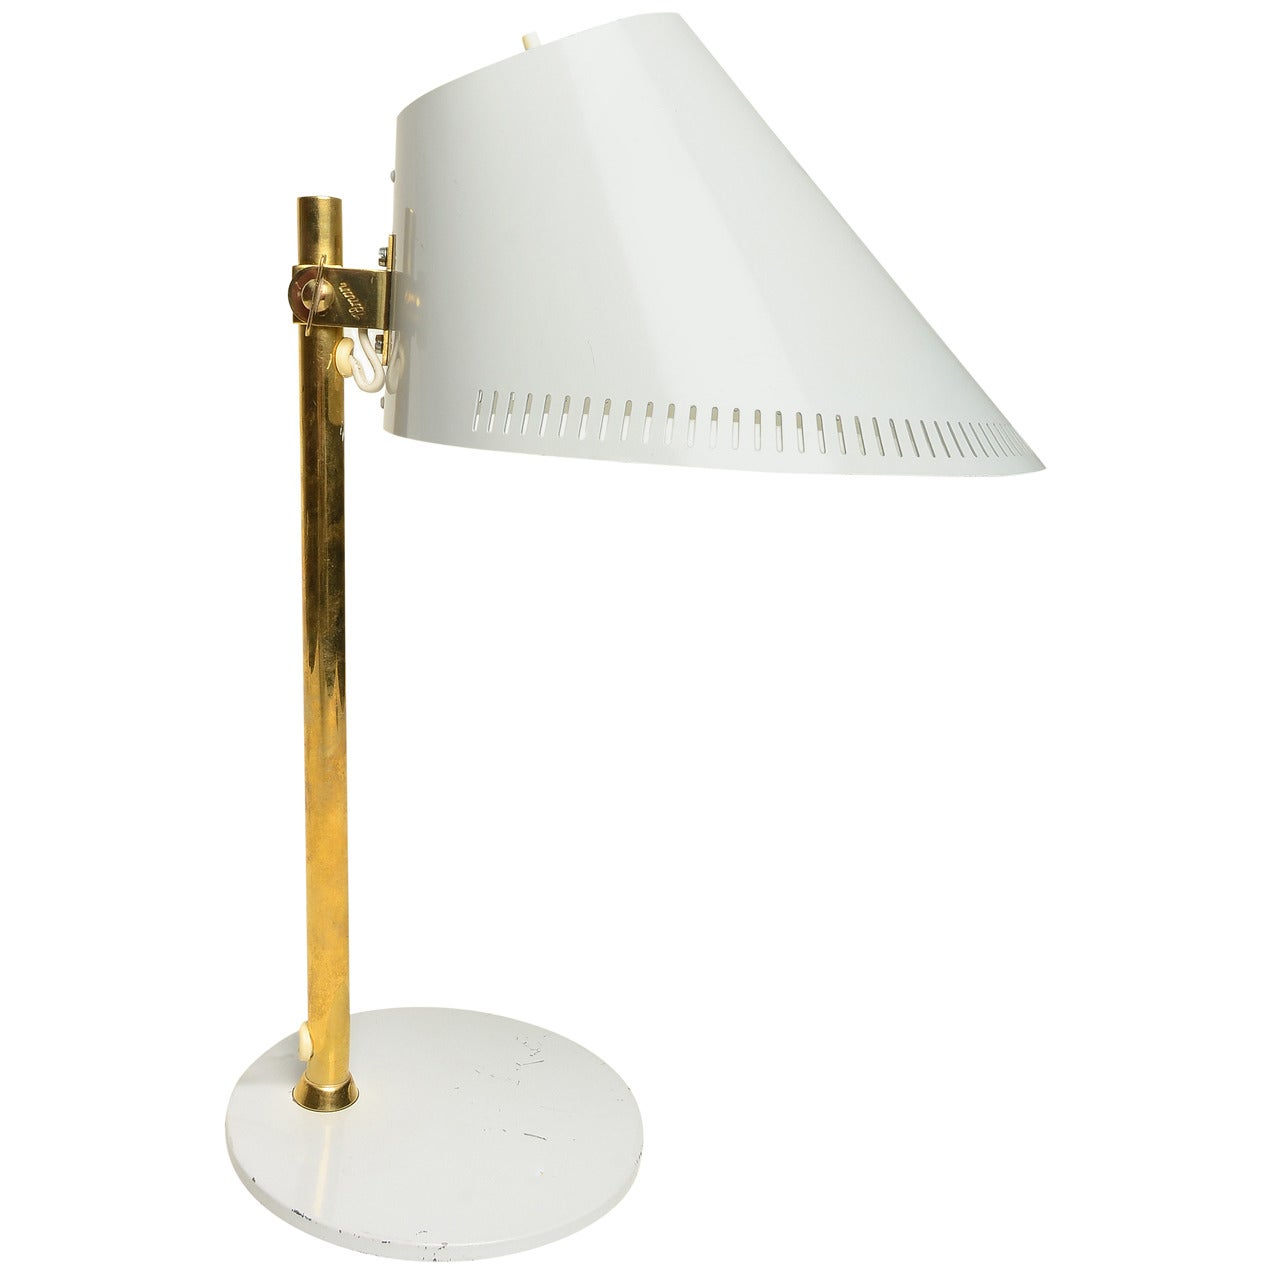 Paavo Tynell Table Lamp, Model 9227